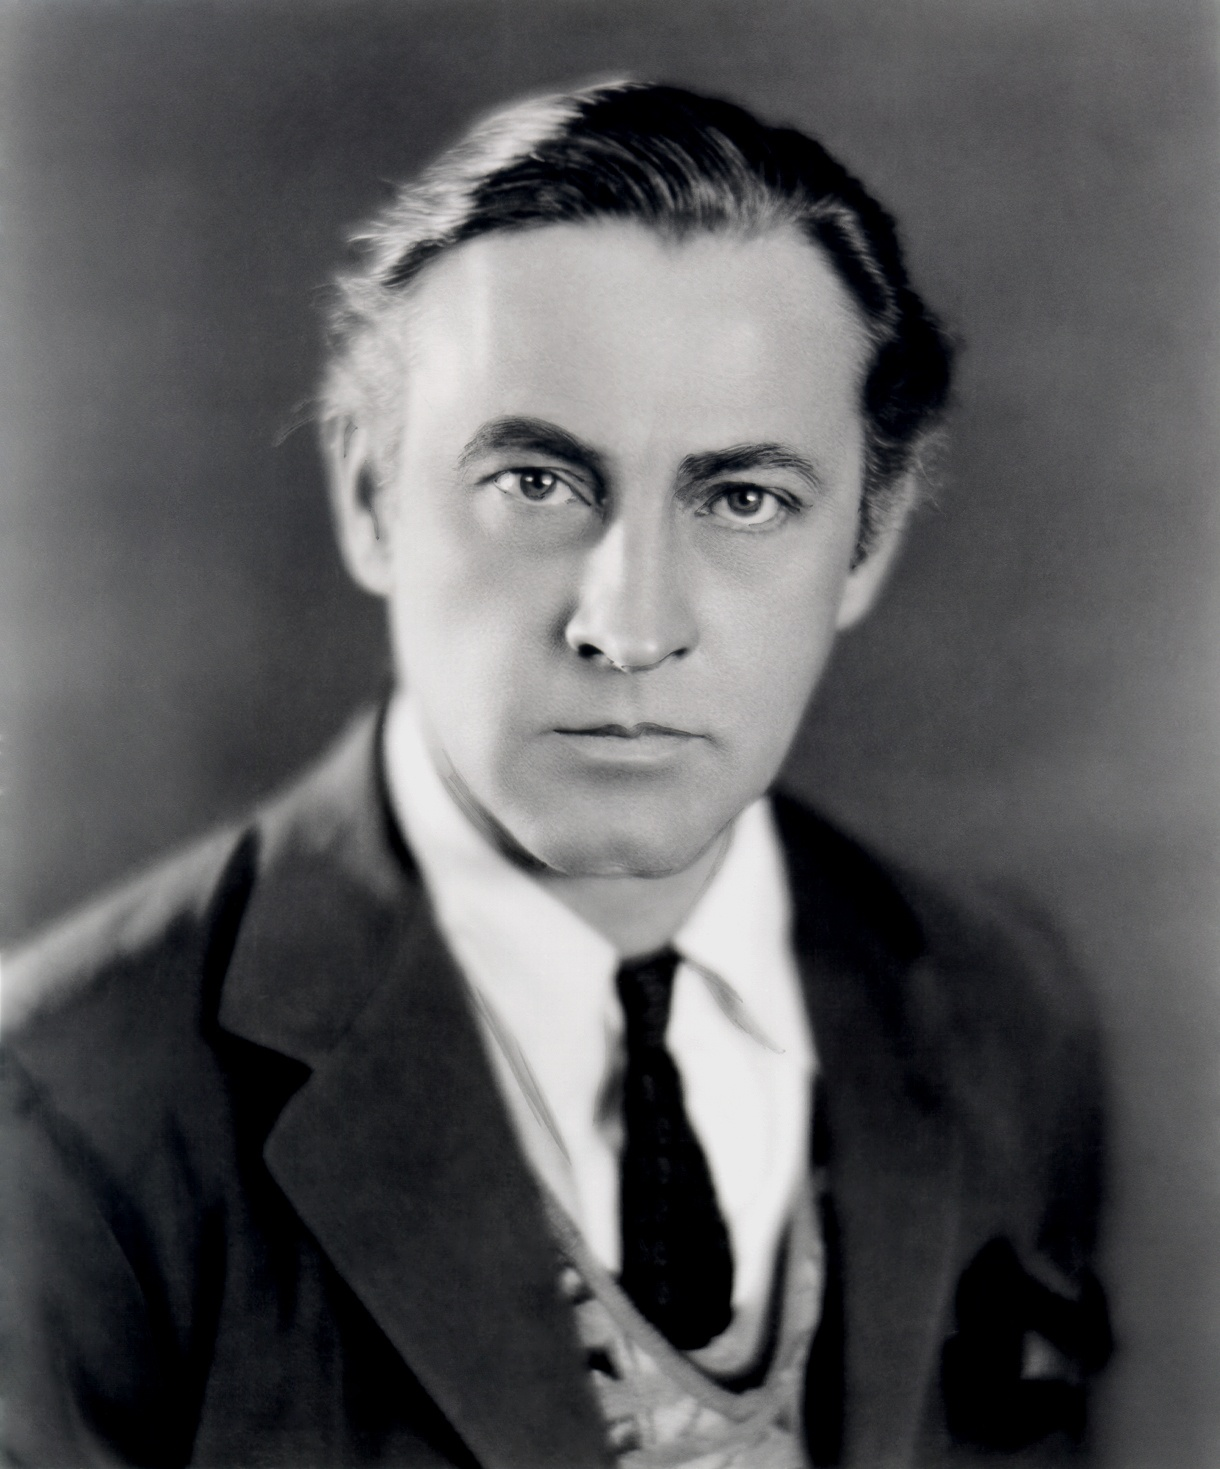 John Barrymore Net Worth